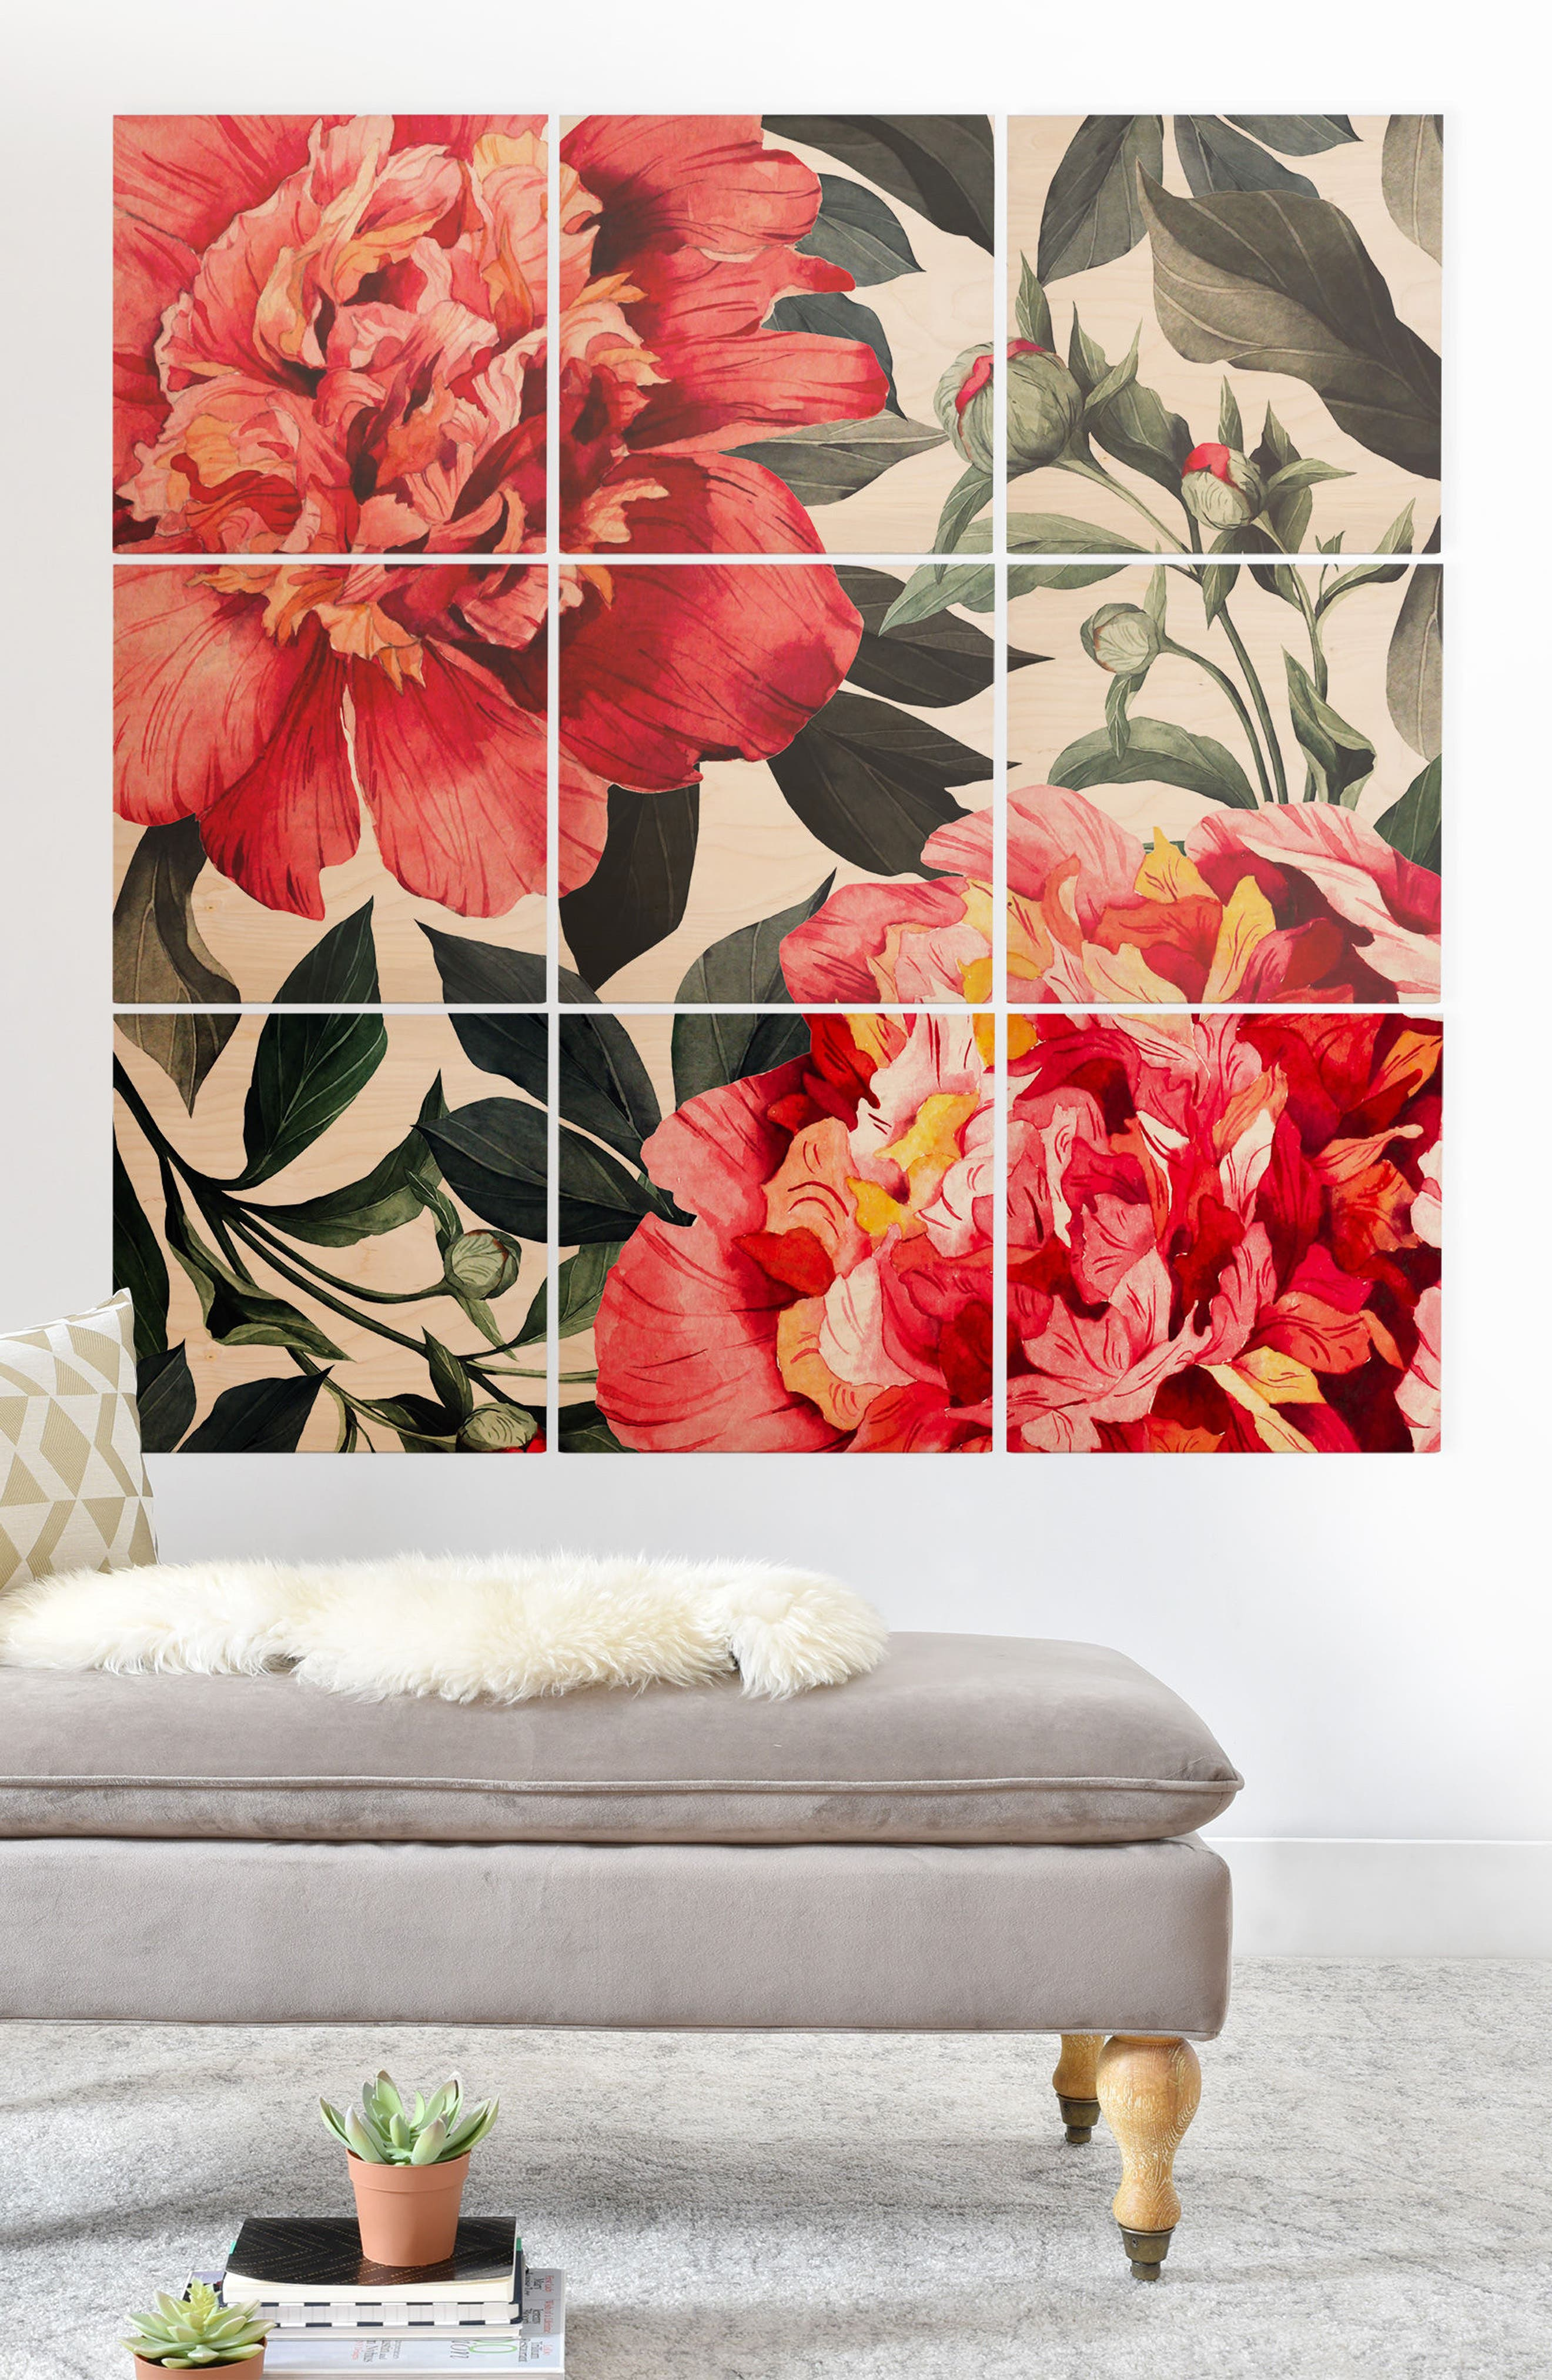 Red Flowers 9-Piece Wood Wall Mural,                             Alternate thumbnail 2, color,